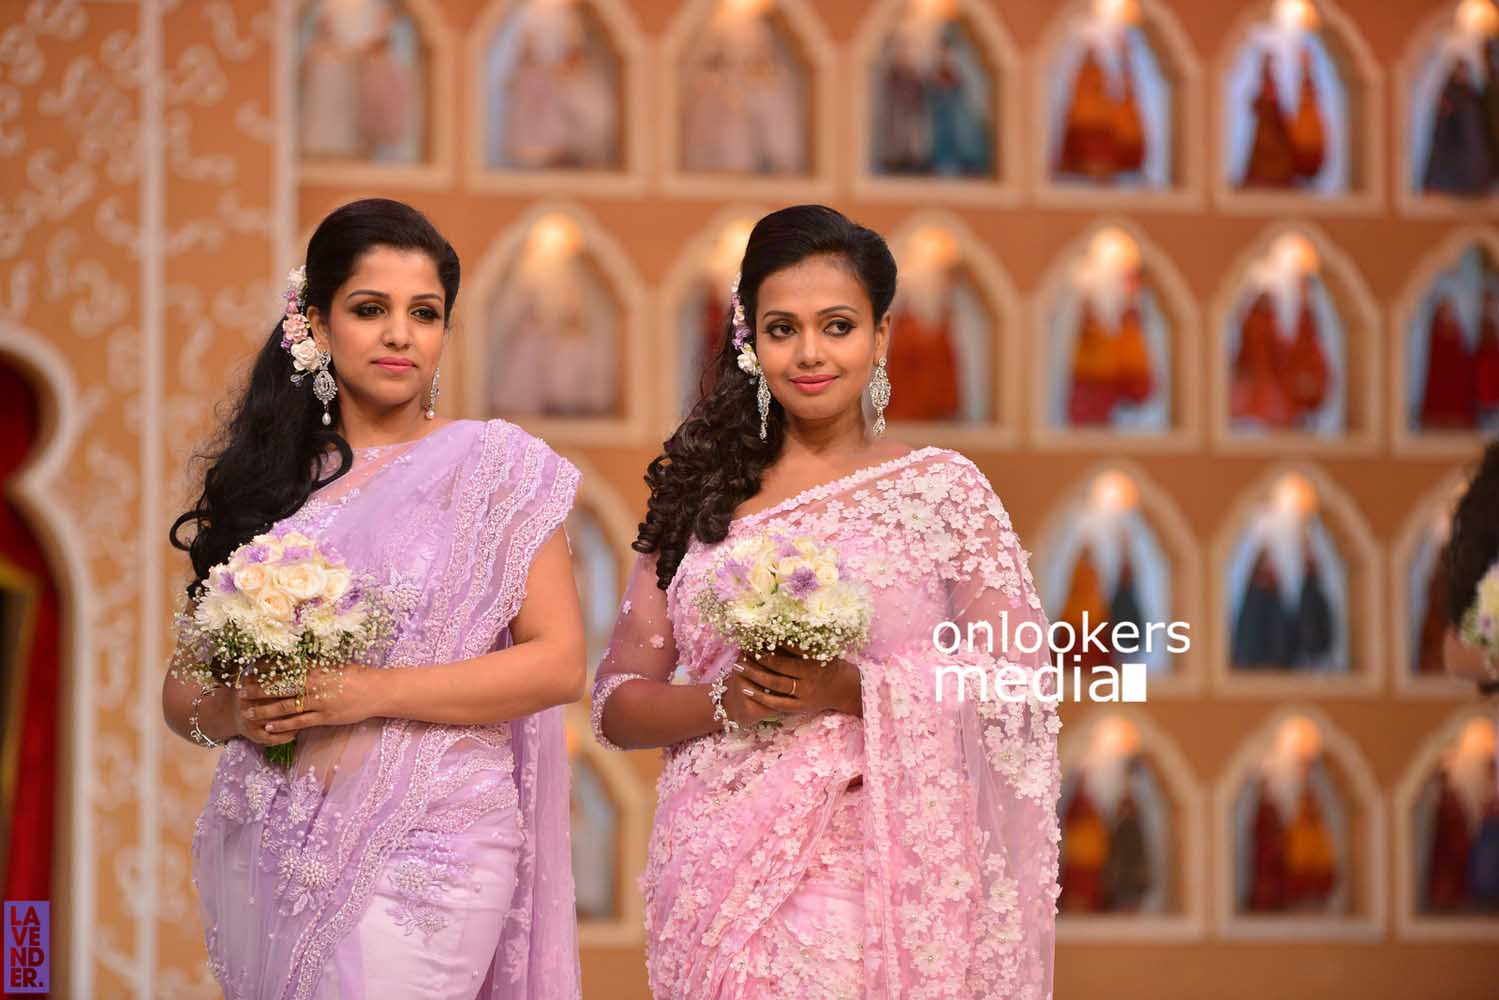 http://onlookersmedia.in/wp-content/uploads/2016/10/Beena-Kannan-Bridal-Show-2016-Stills-Photos-Seematti-99.jpg